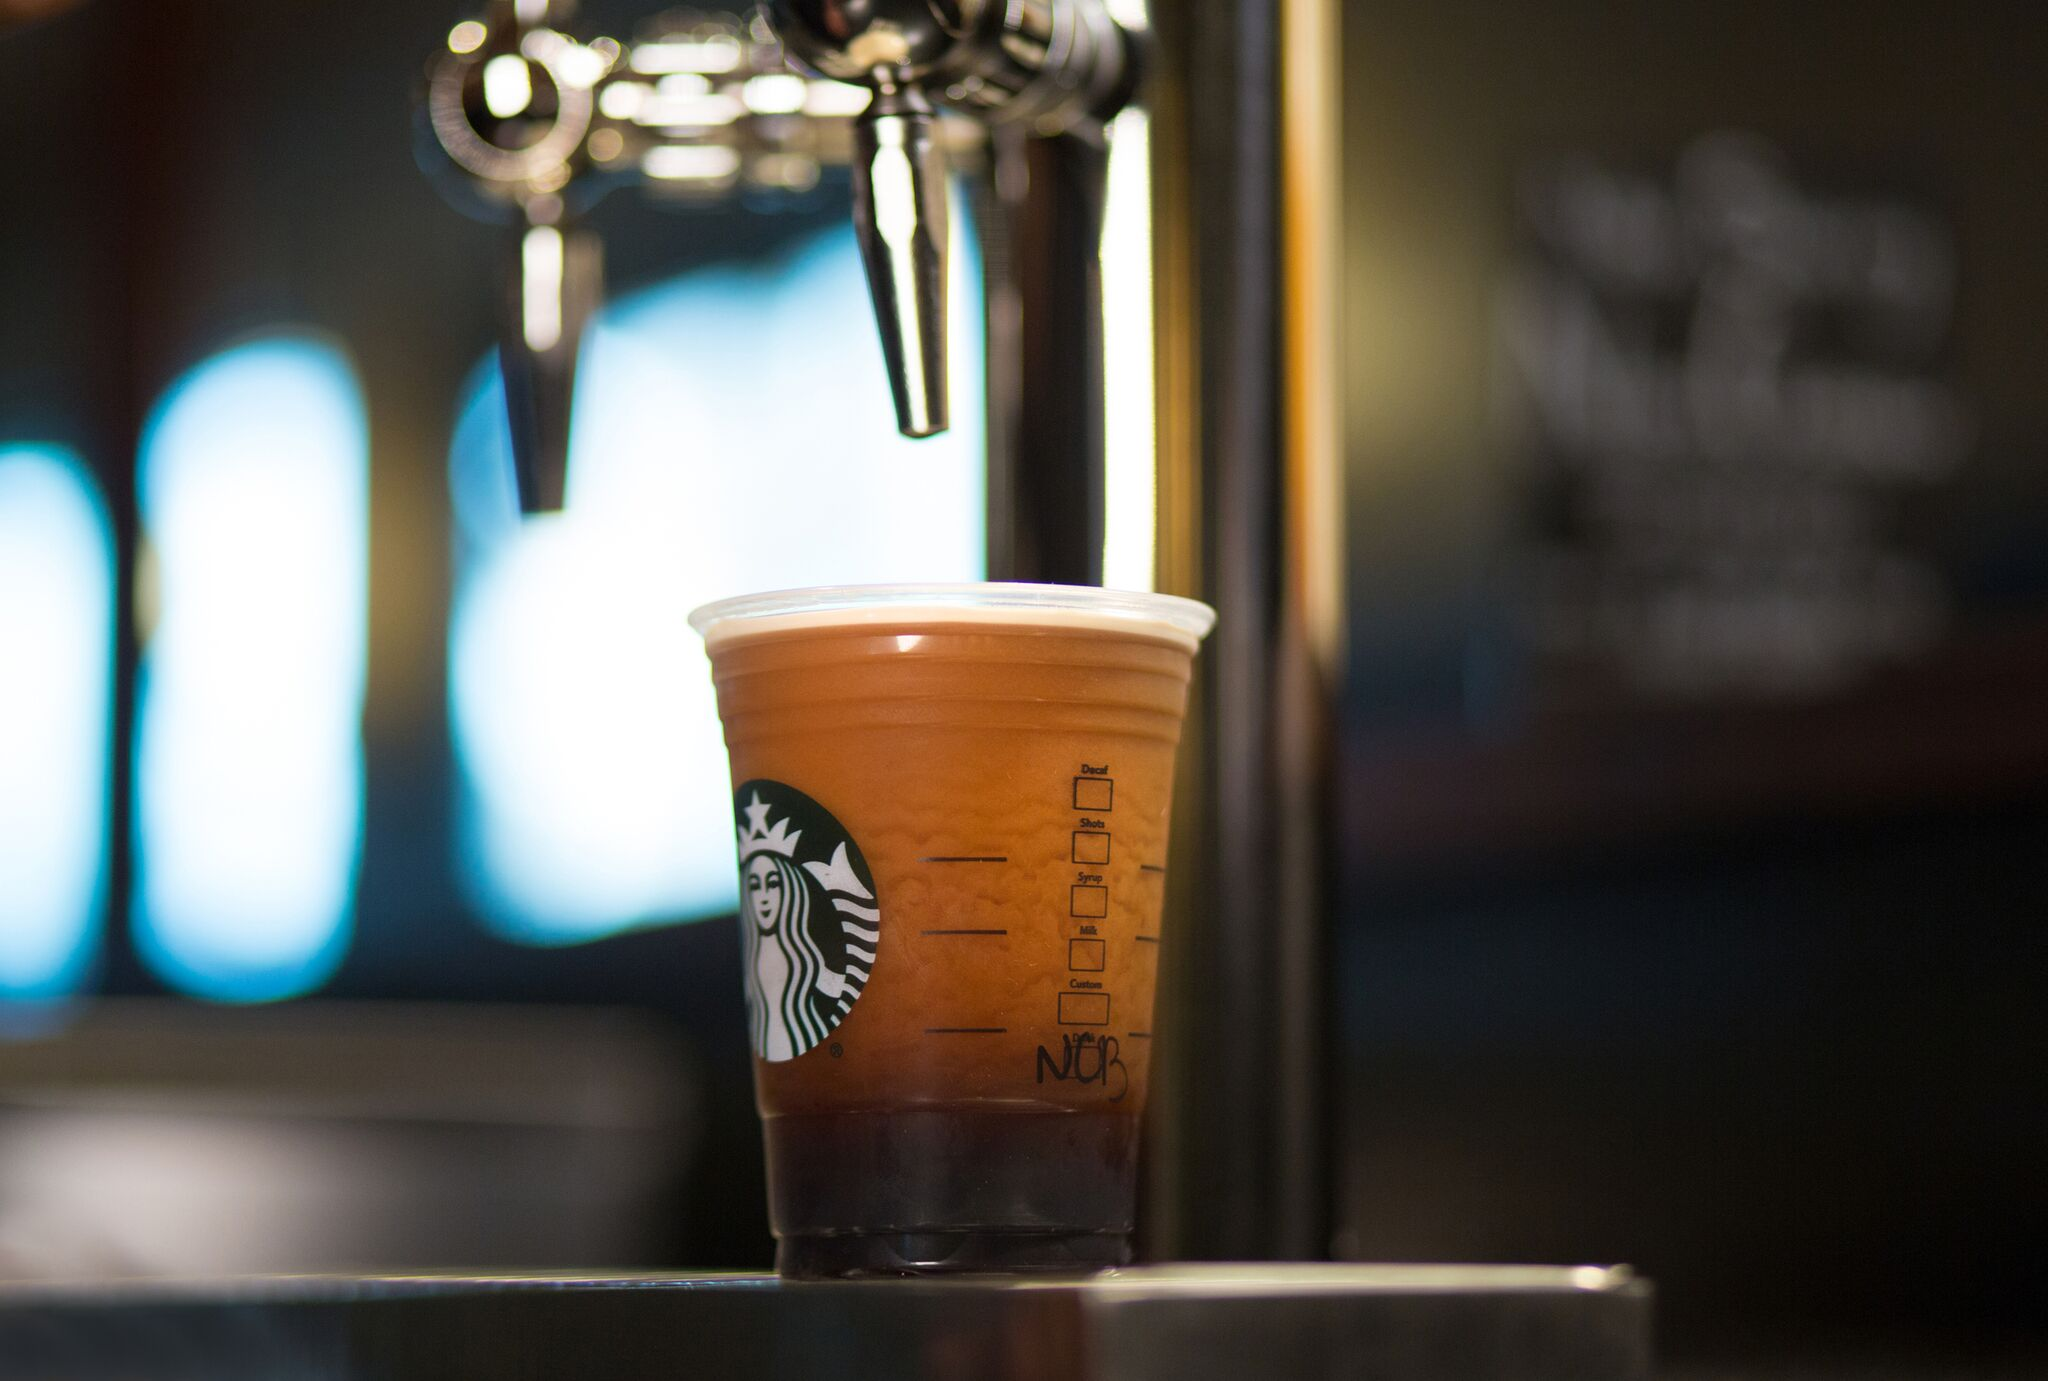 Do you buy coffee at Starbucks, and if so, why?